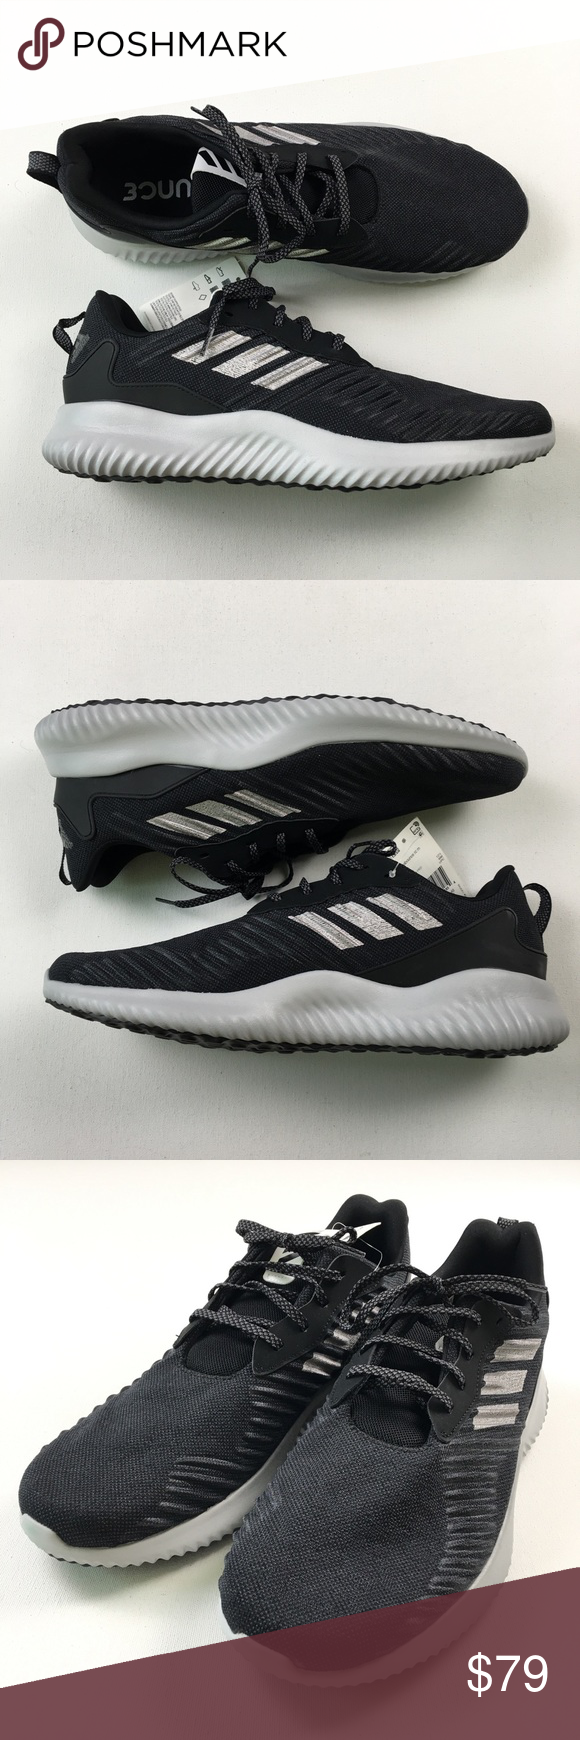 c6857cf721daad Adidas Mens Alphabounce RC M 13 ART DA9768 Brand new basketball shoes  sneakers. no box. About Daily Refinement  -All Items Guaranteed 100%  Authentic Or Your ...